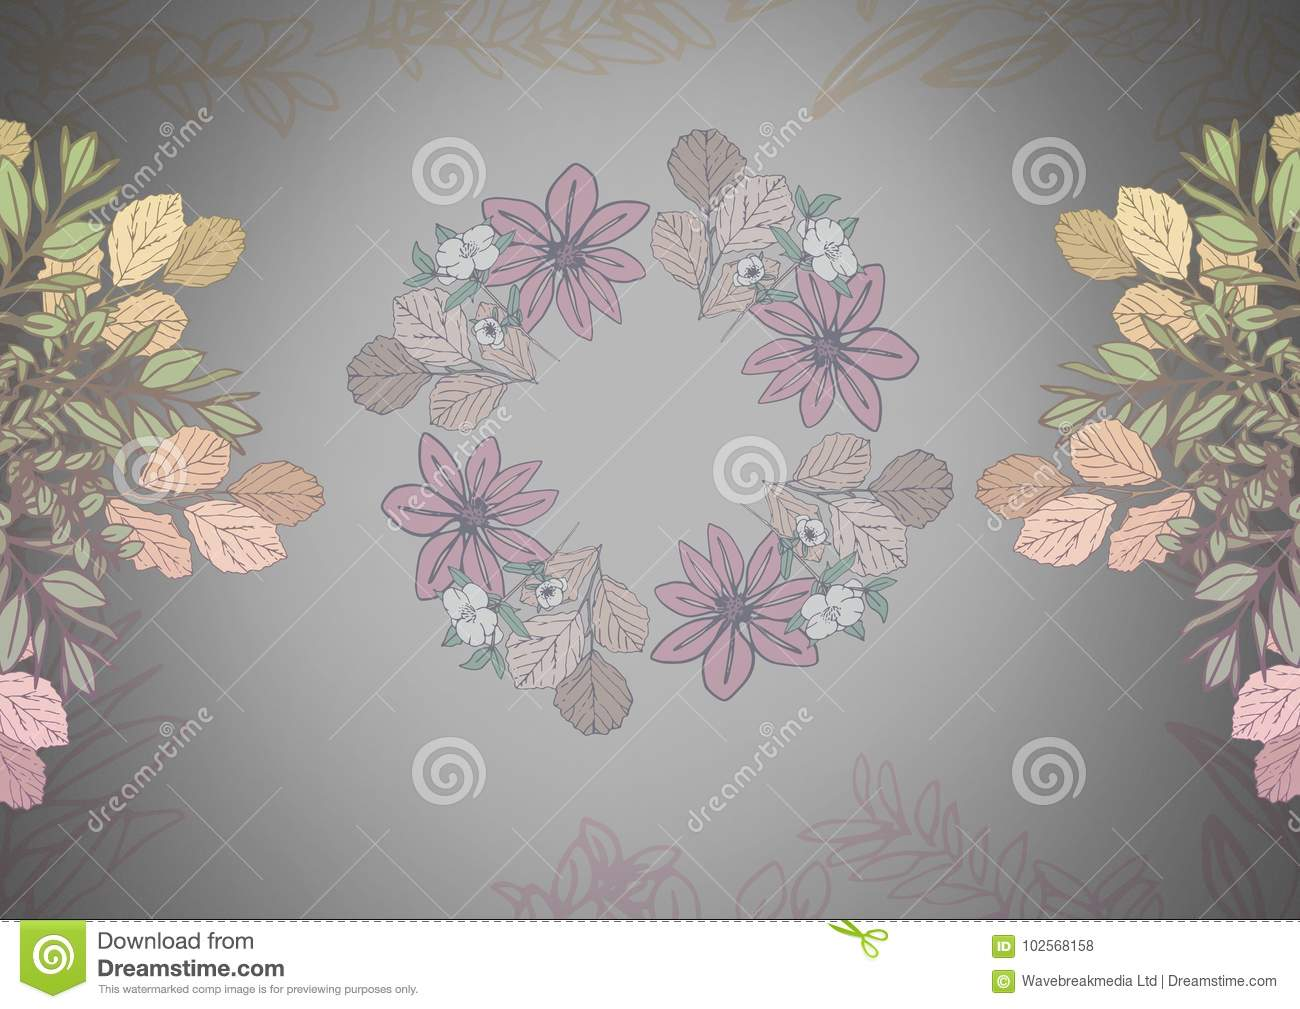 Grey background with pretty flower patterns stock illustration download grey background with pretty flower patterns stock illustration illustration of color image mightylinksfo